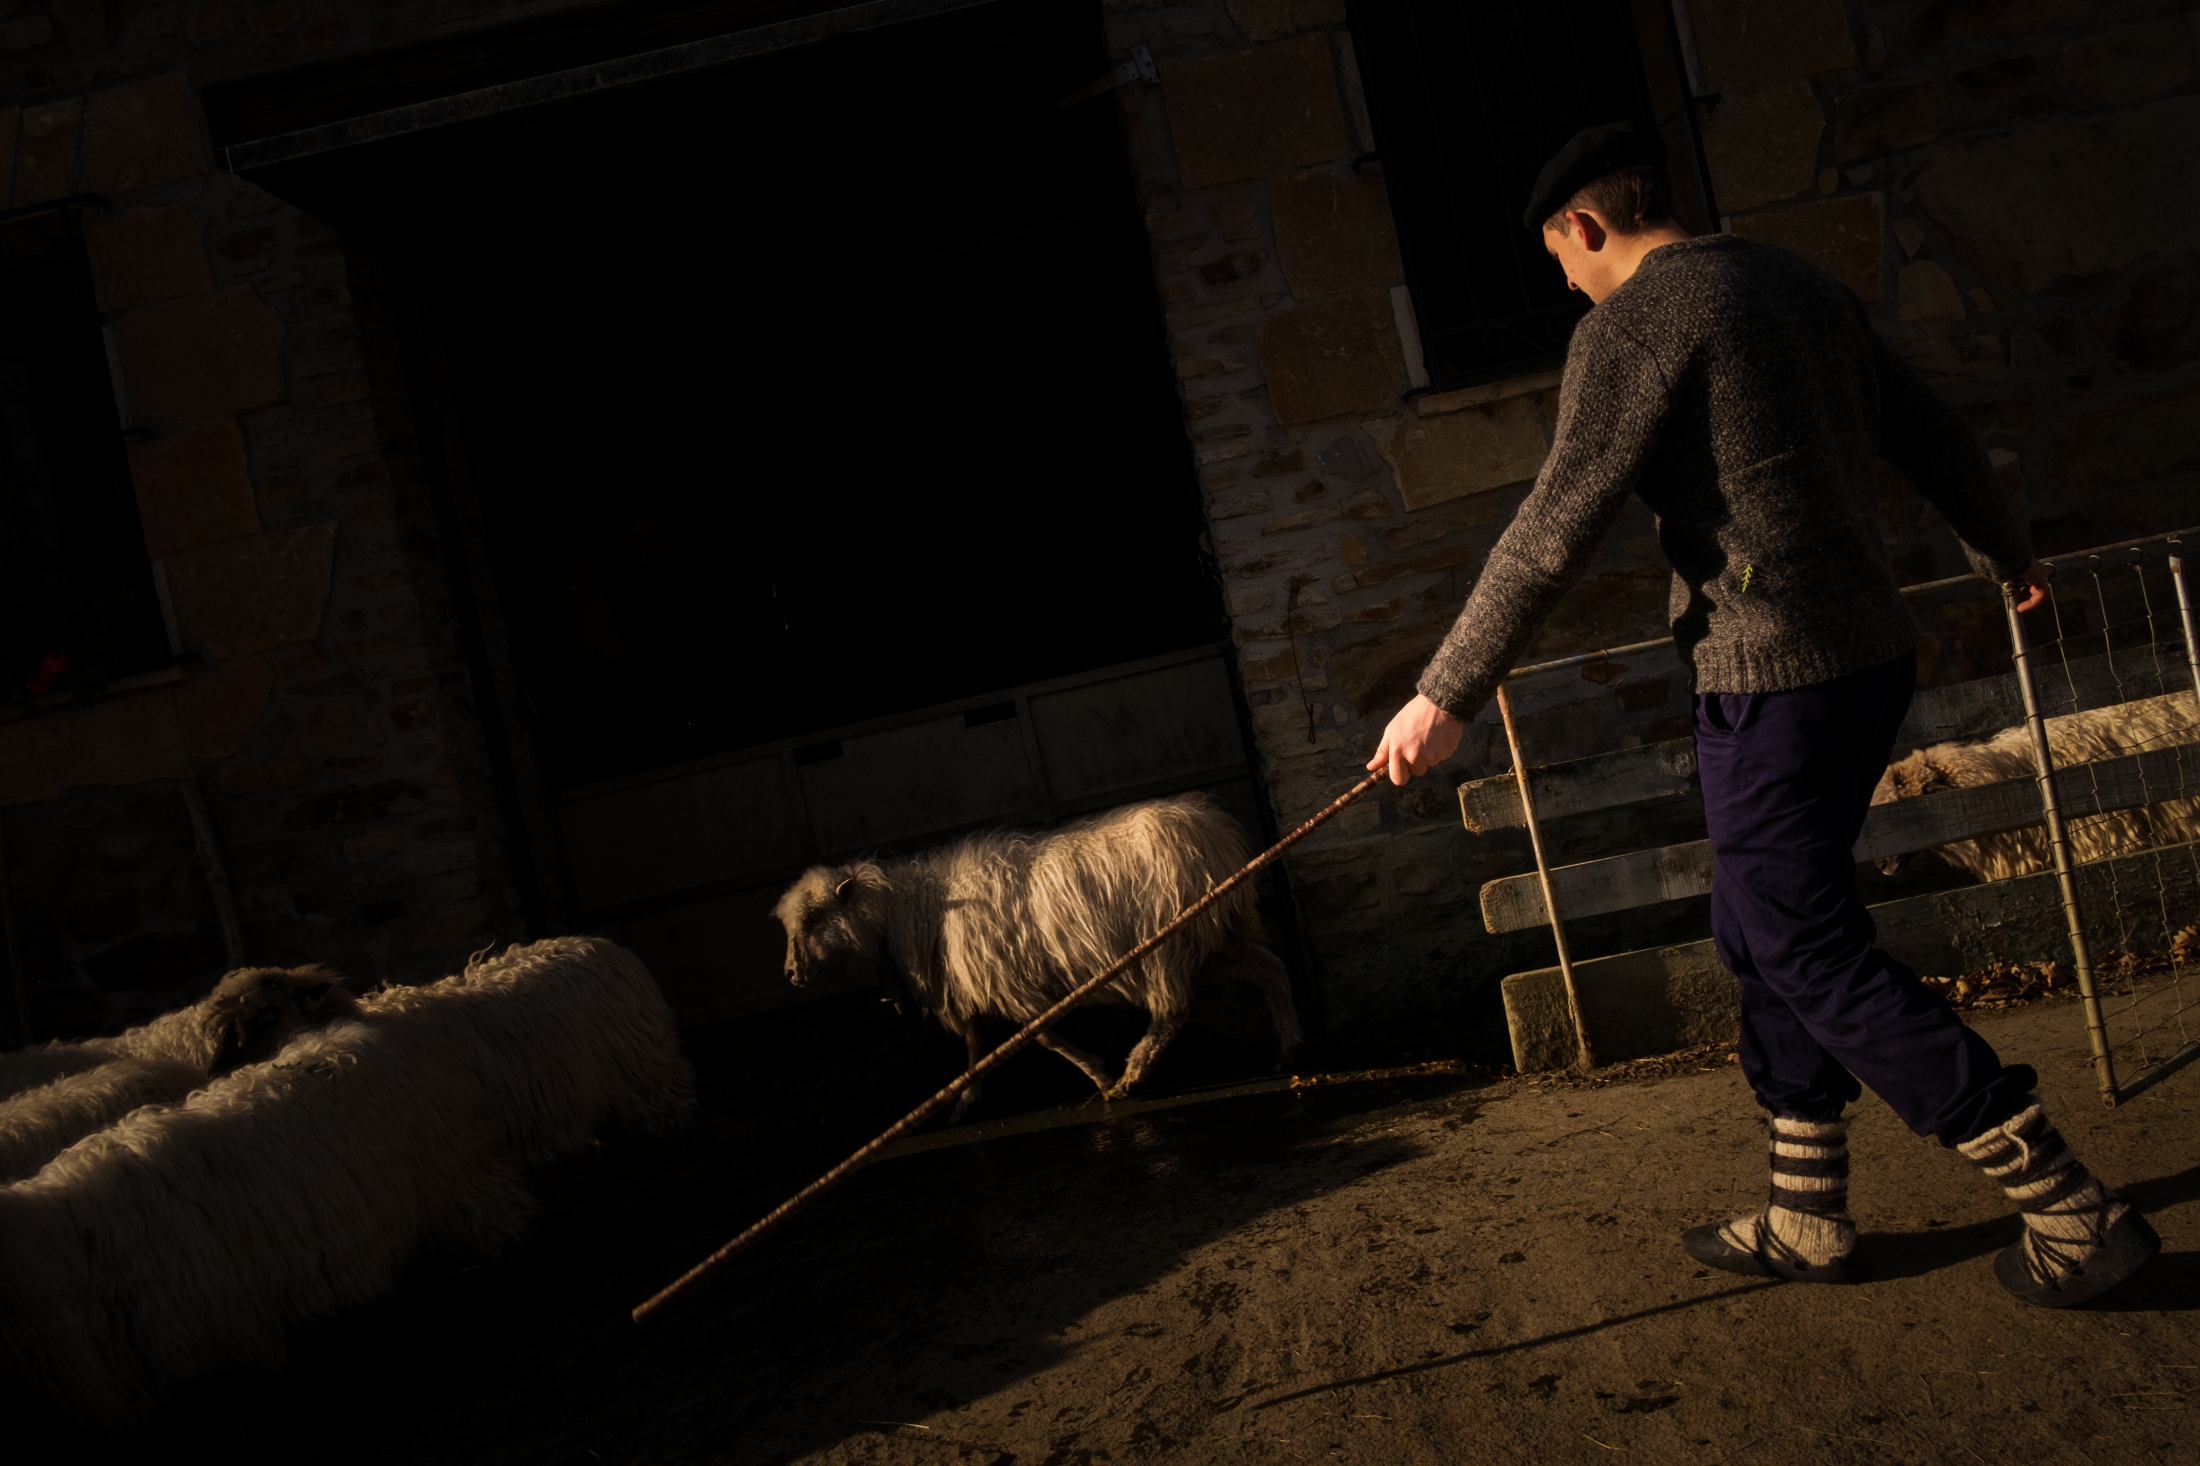 Aitor gathers the flock of sheep in the barn.